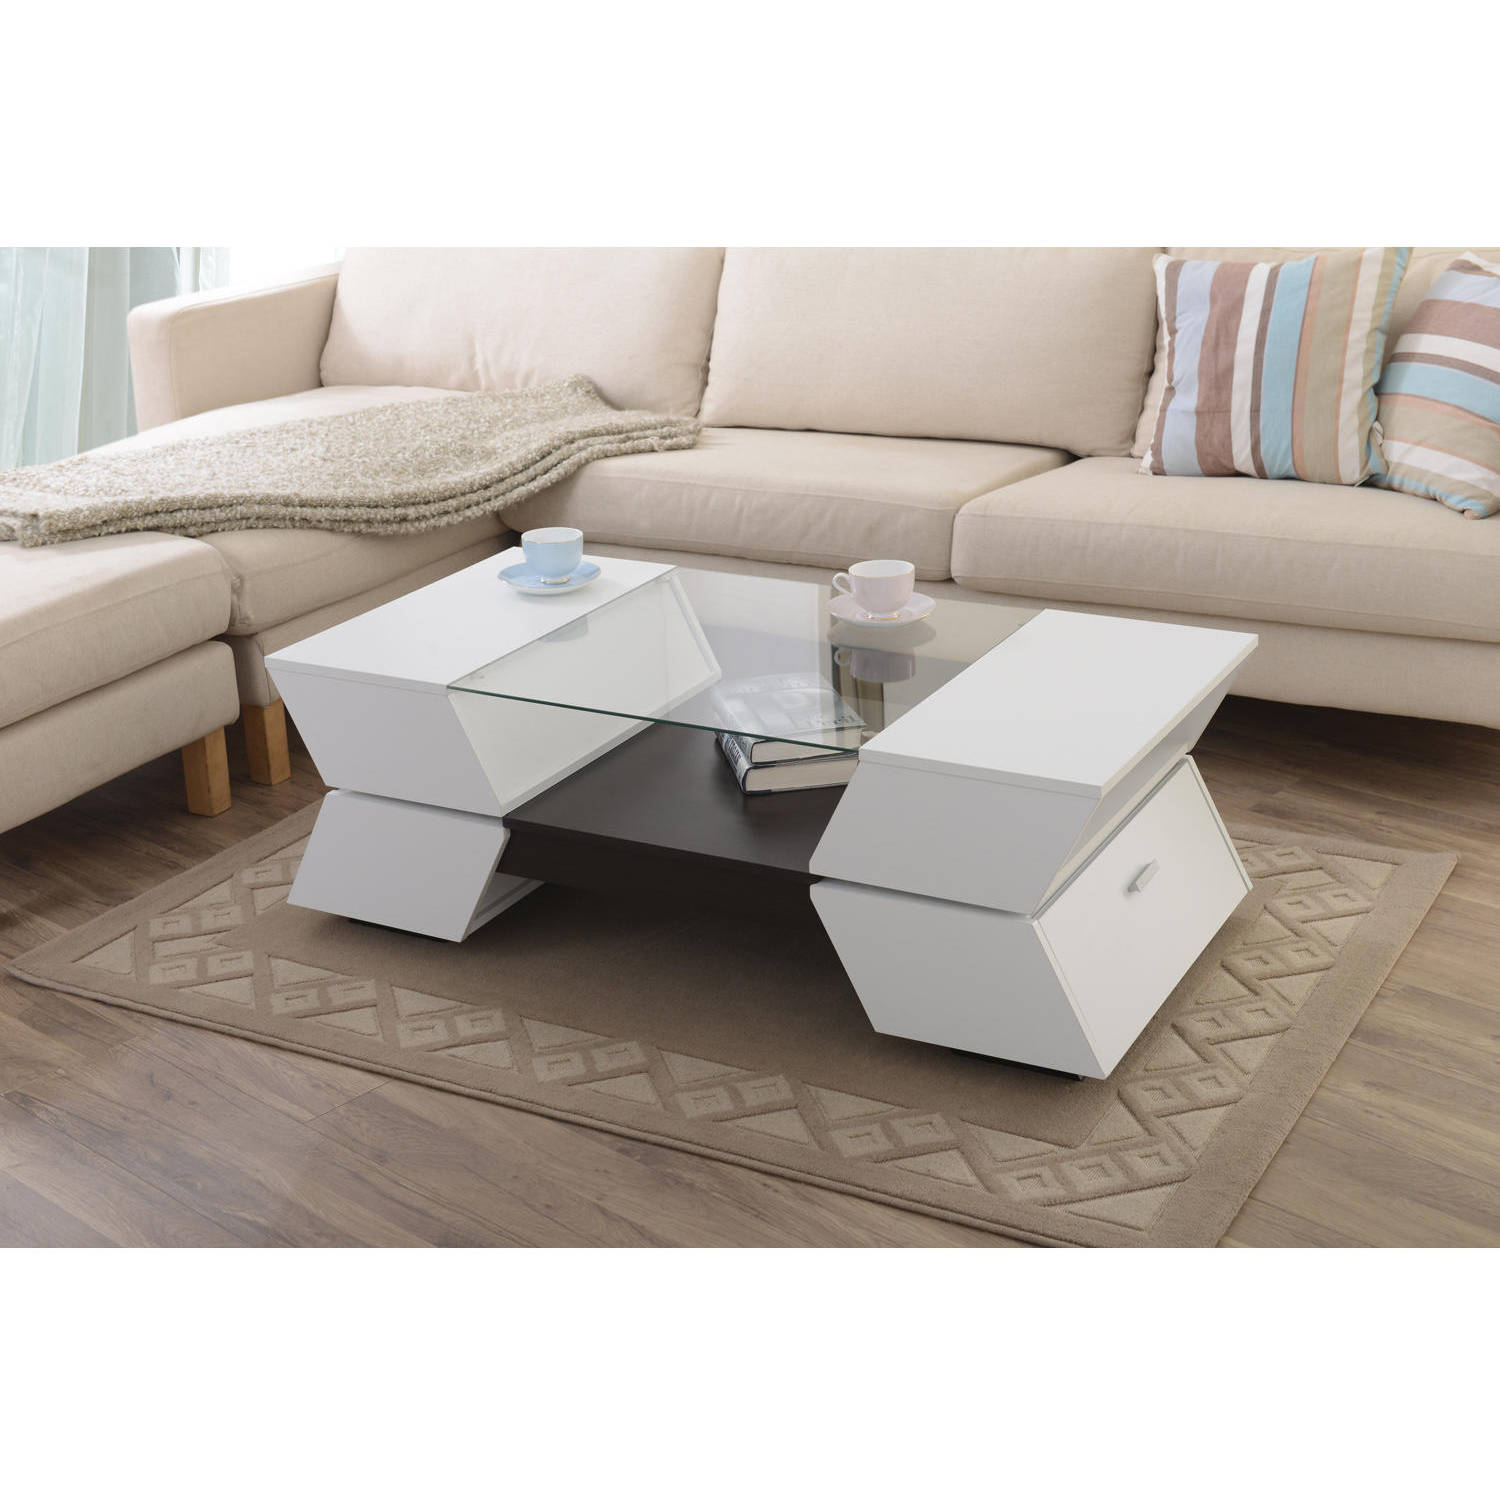 Furniture of America Colston Glass Top Contemporary Style Coffee Table, White